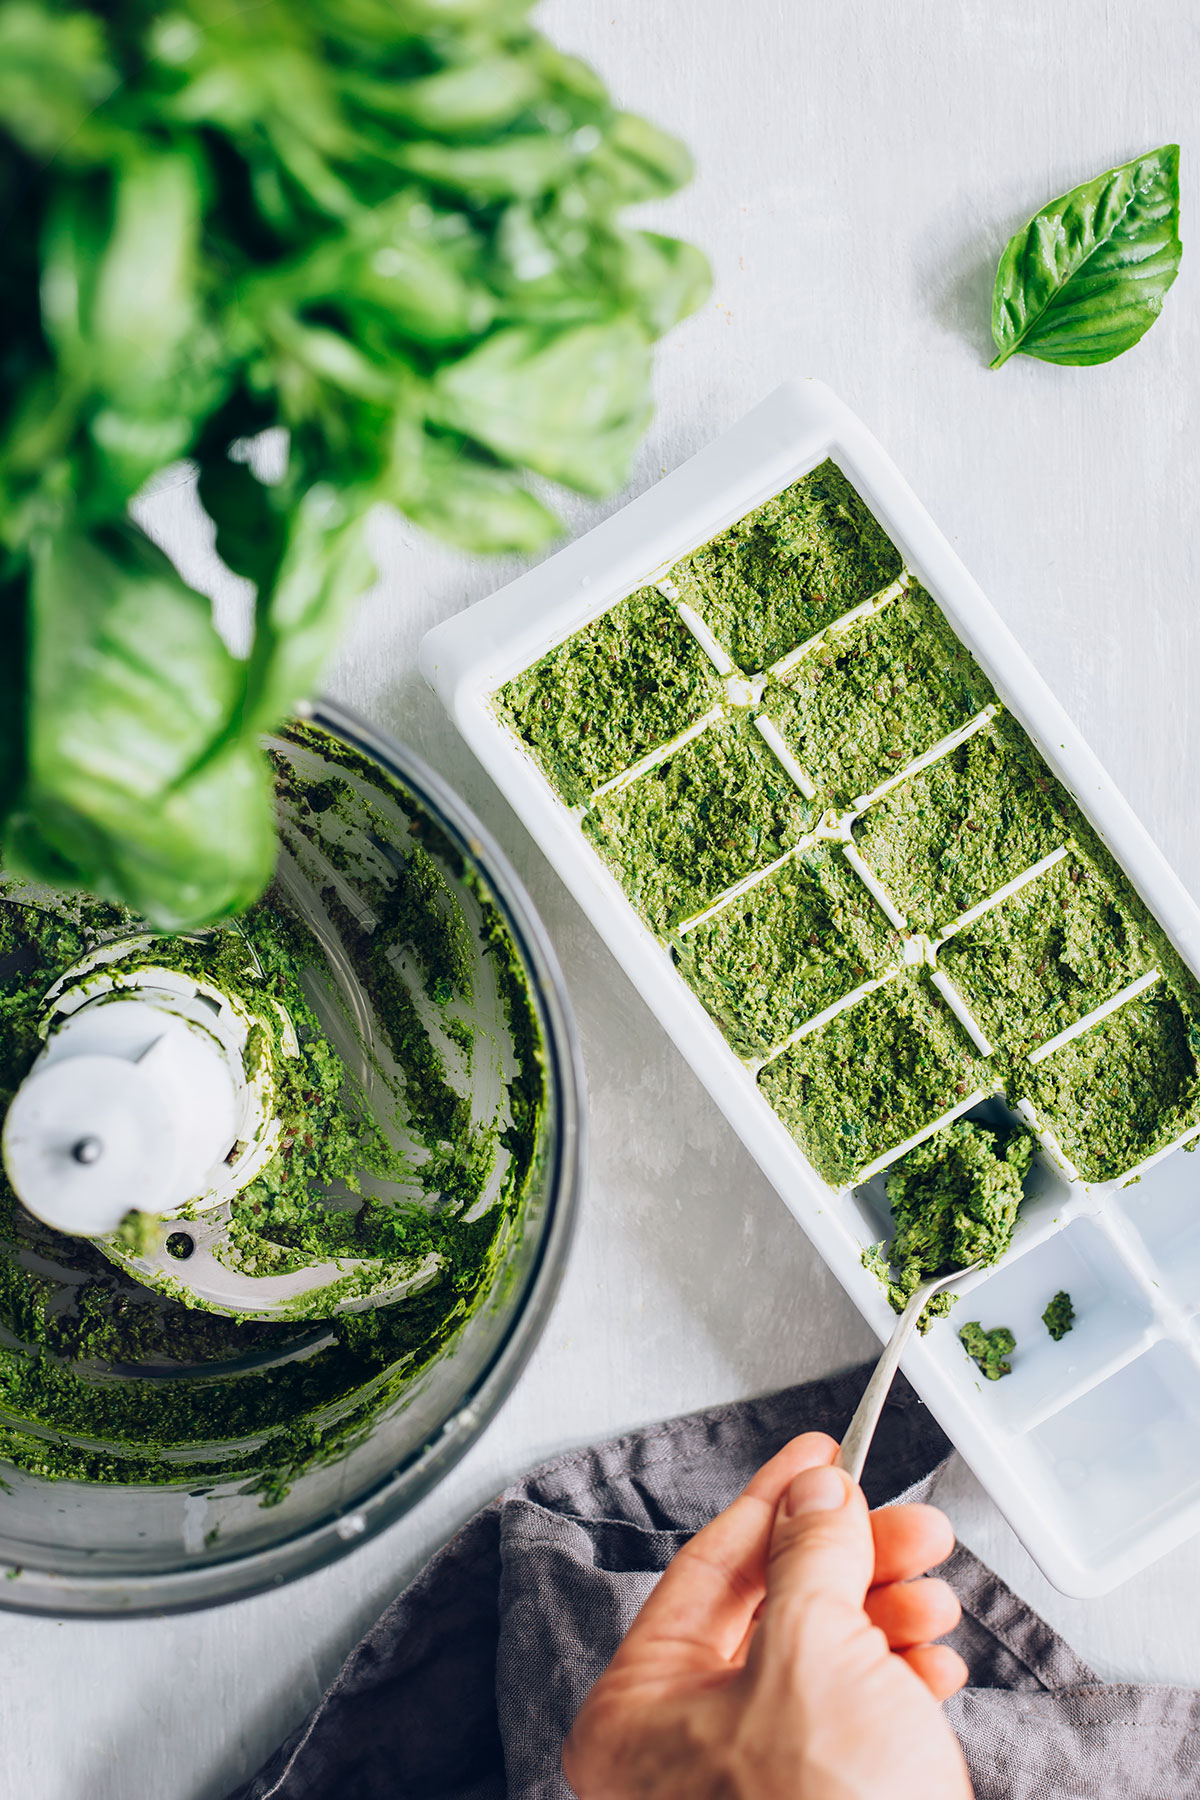 How to make freezer pesto